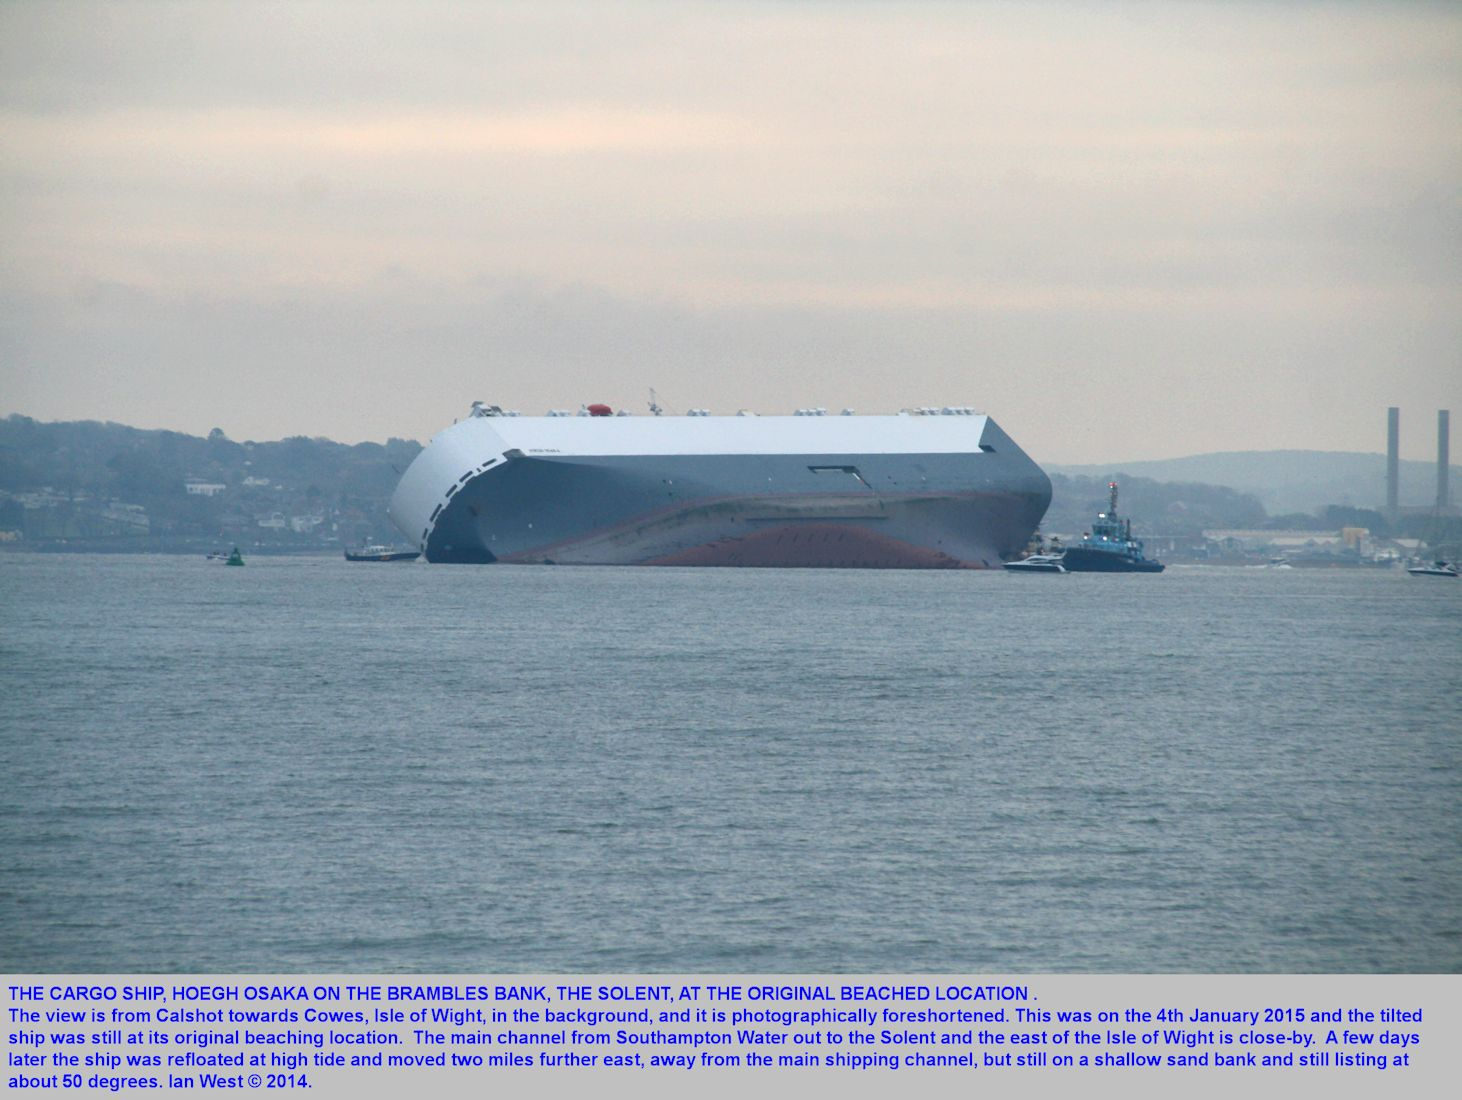 The cargo ship, Hoegh Osaka, developed a major list and was beached on the Brambles Bank, between Calshot Spit and Cowes, Isle of Wight, 4th January, 2015